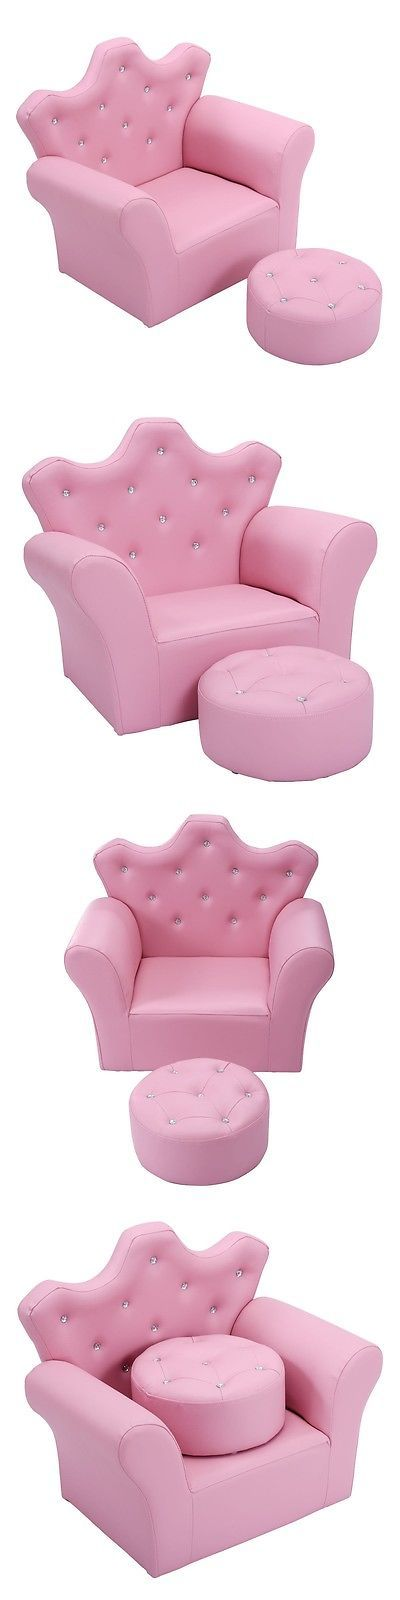 Sofas and Armchairs 134648: Pink Kids Sofa Armrest Chair Couch Children Toddler Birthday Gift W Ottoman Us -> BUY IT NOW ONLY: $79.99 on eBay!